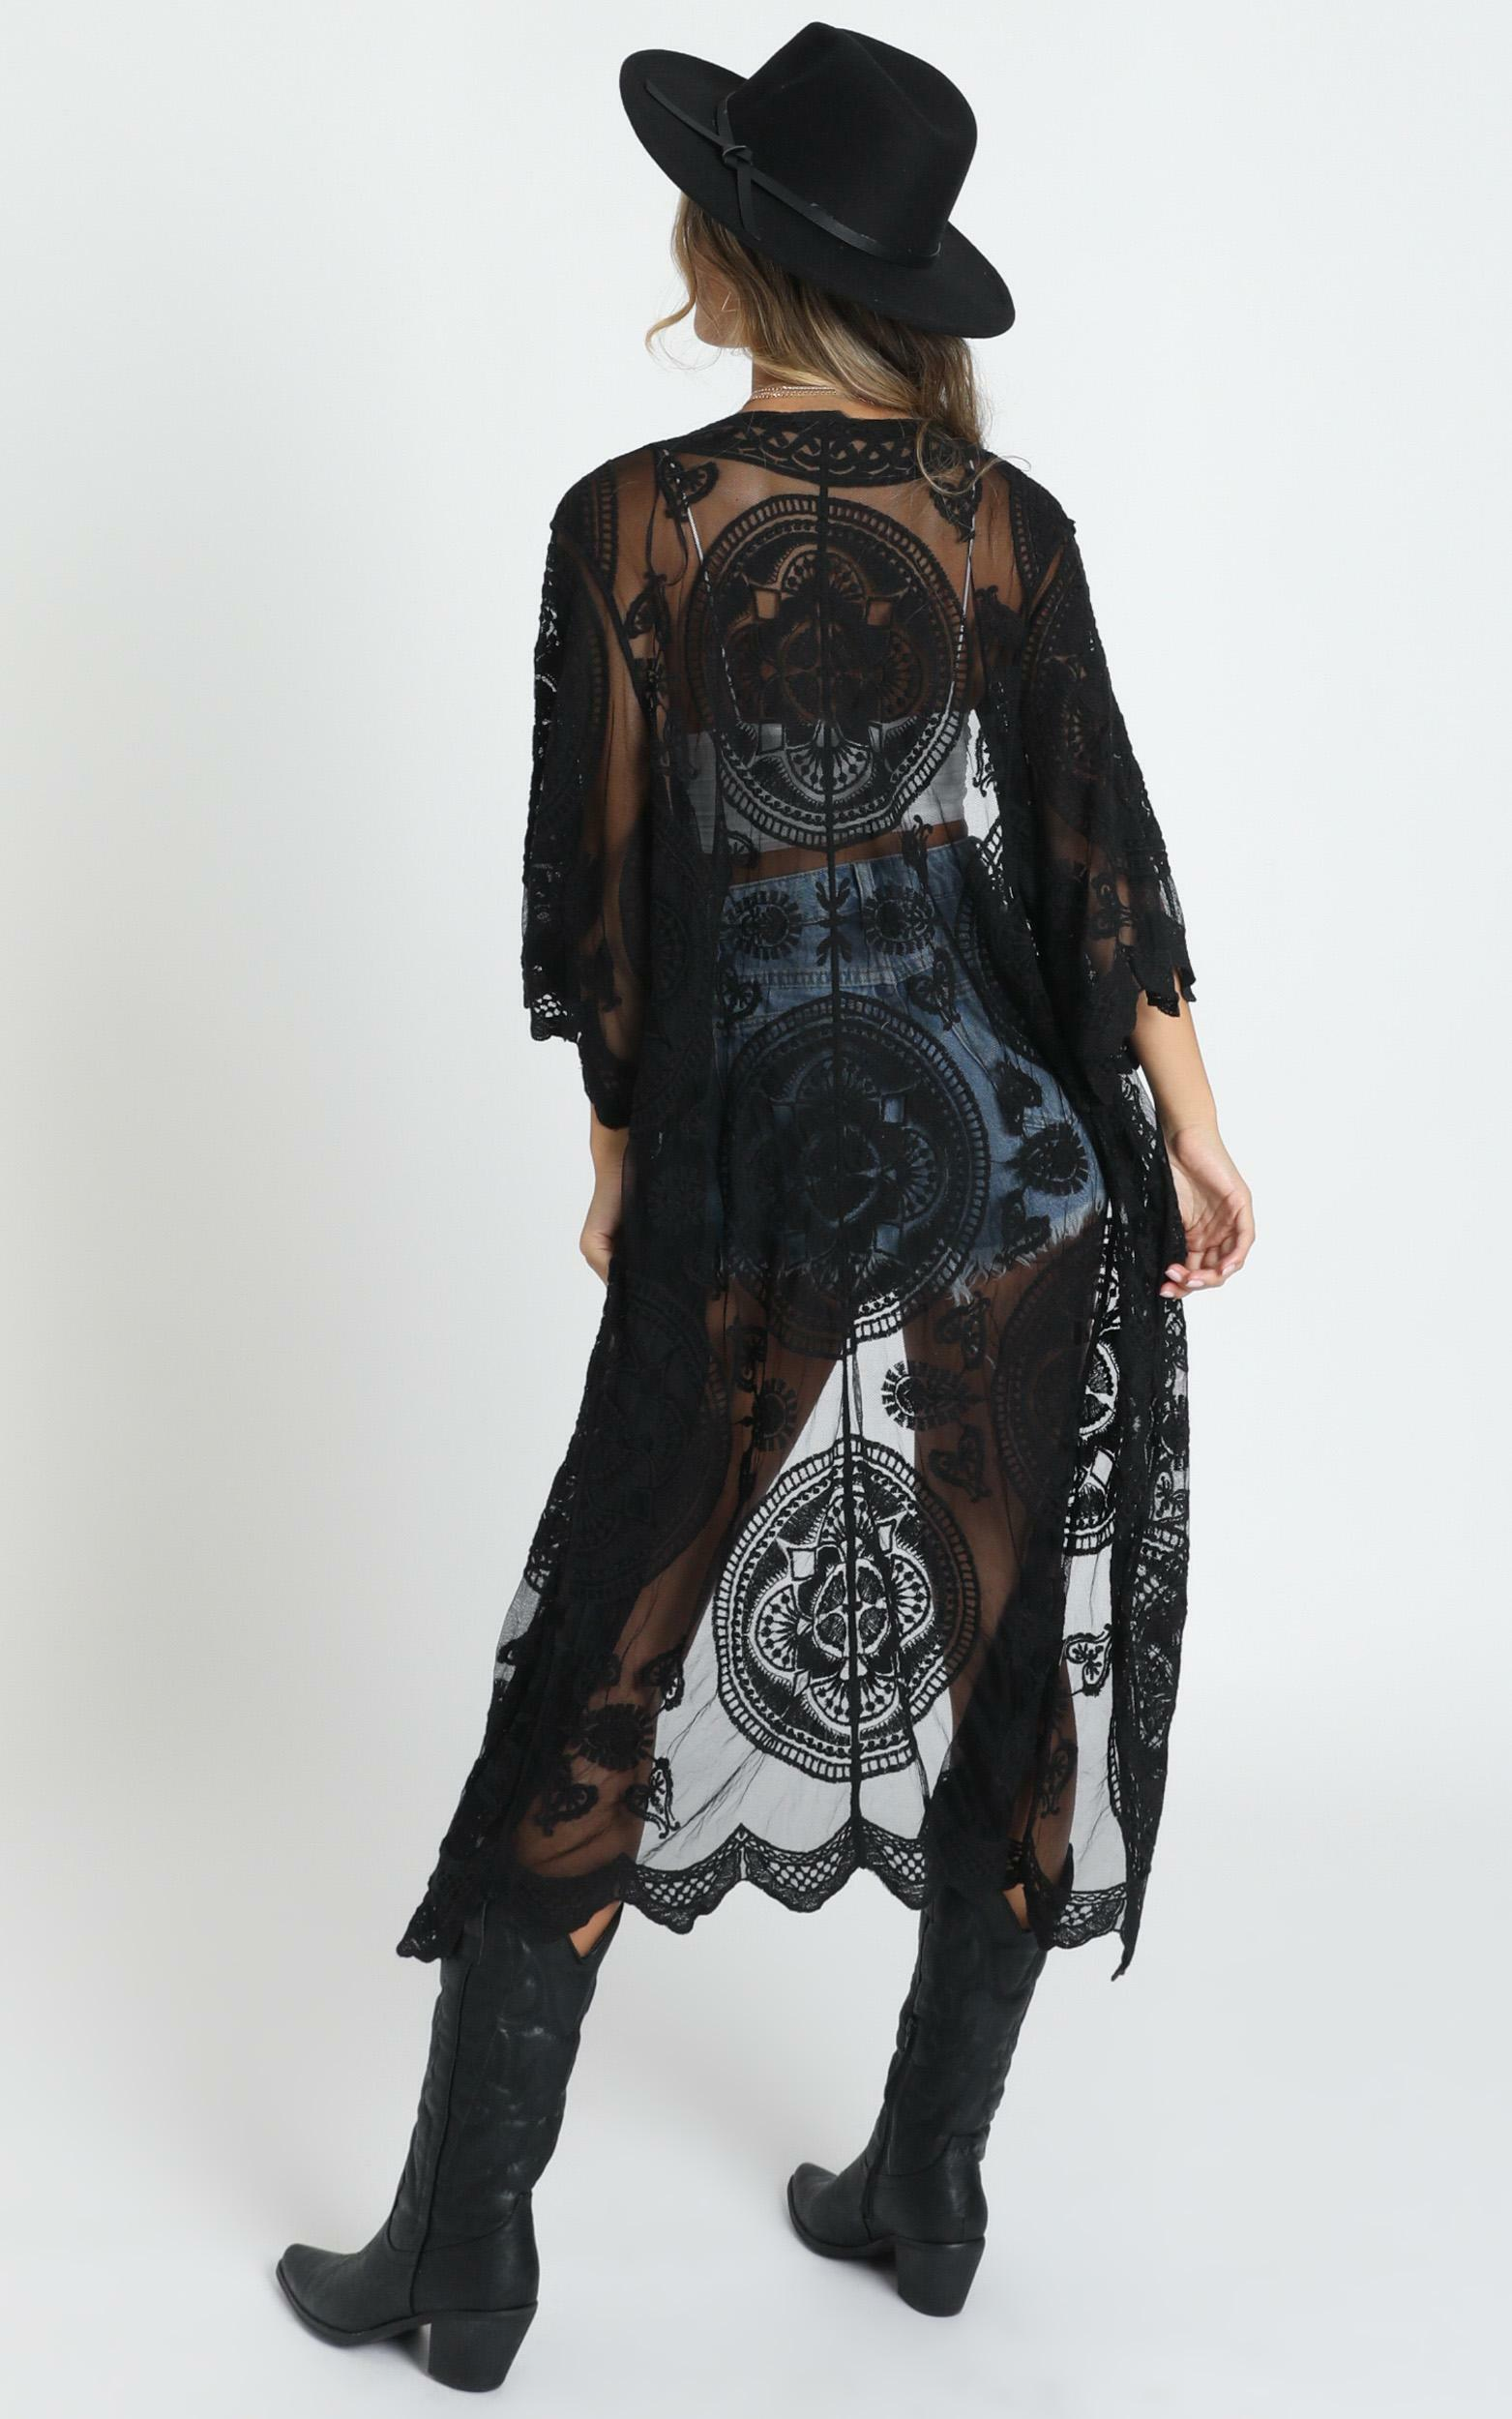 Heavy Hearted Kimono in Black - M/L, Black, hi-res image number null